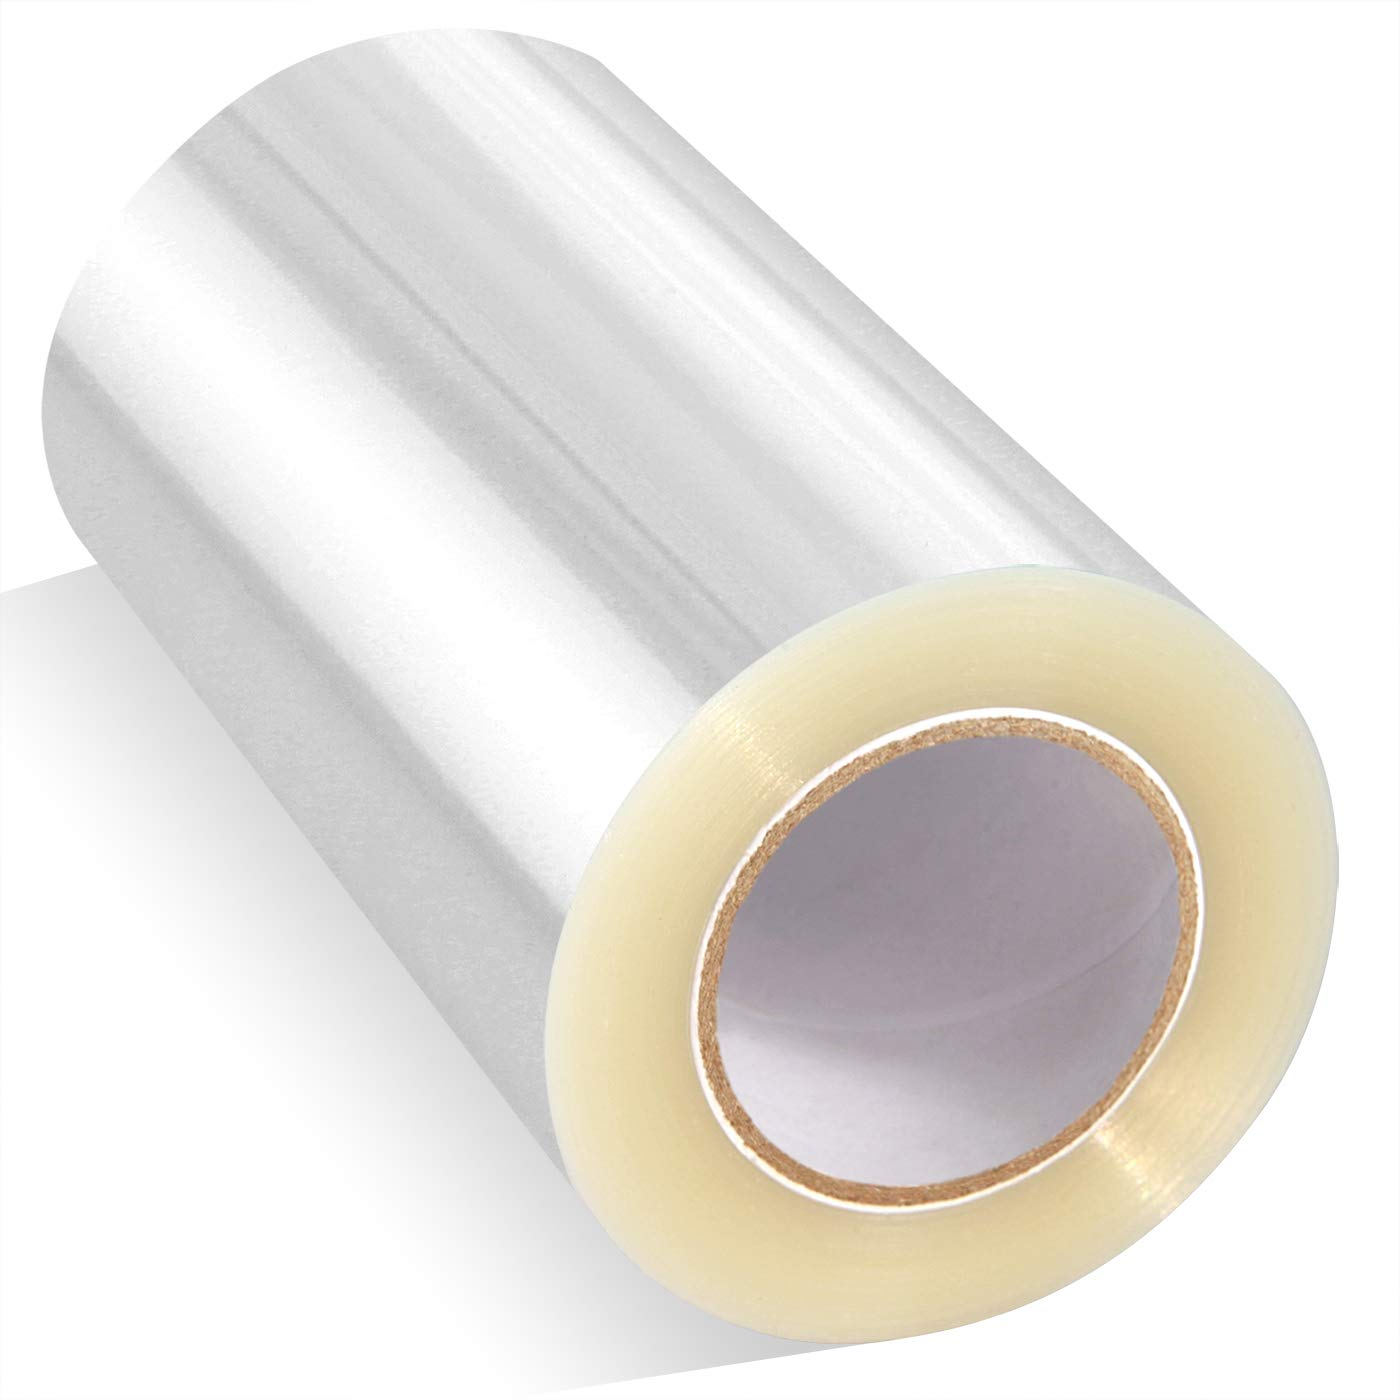 Cake Collar, GUGUJI Chocolate Mousse and Cake Decorating Acetate Sheet CLEAR ACETATE ROLL 125 Micron (2.4 X 394 inch) GUGUJI-CC-008